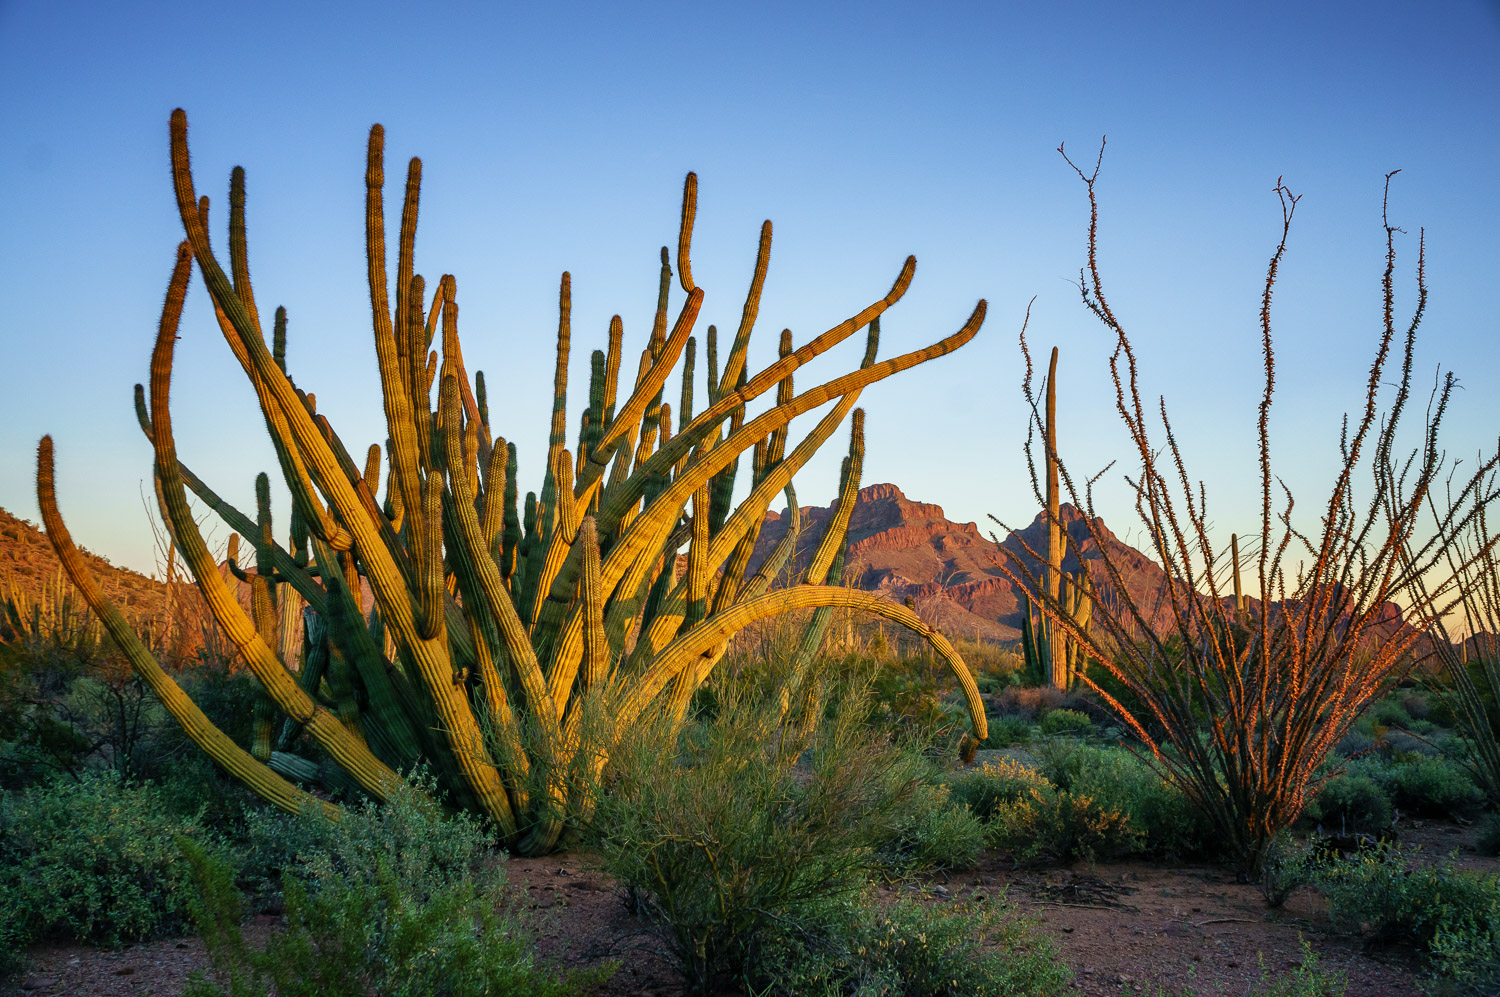 Organ Pipe Cactus - Beginner's Guide to Natural Light in Landscape Photography